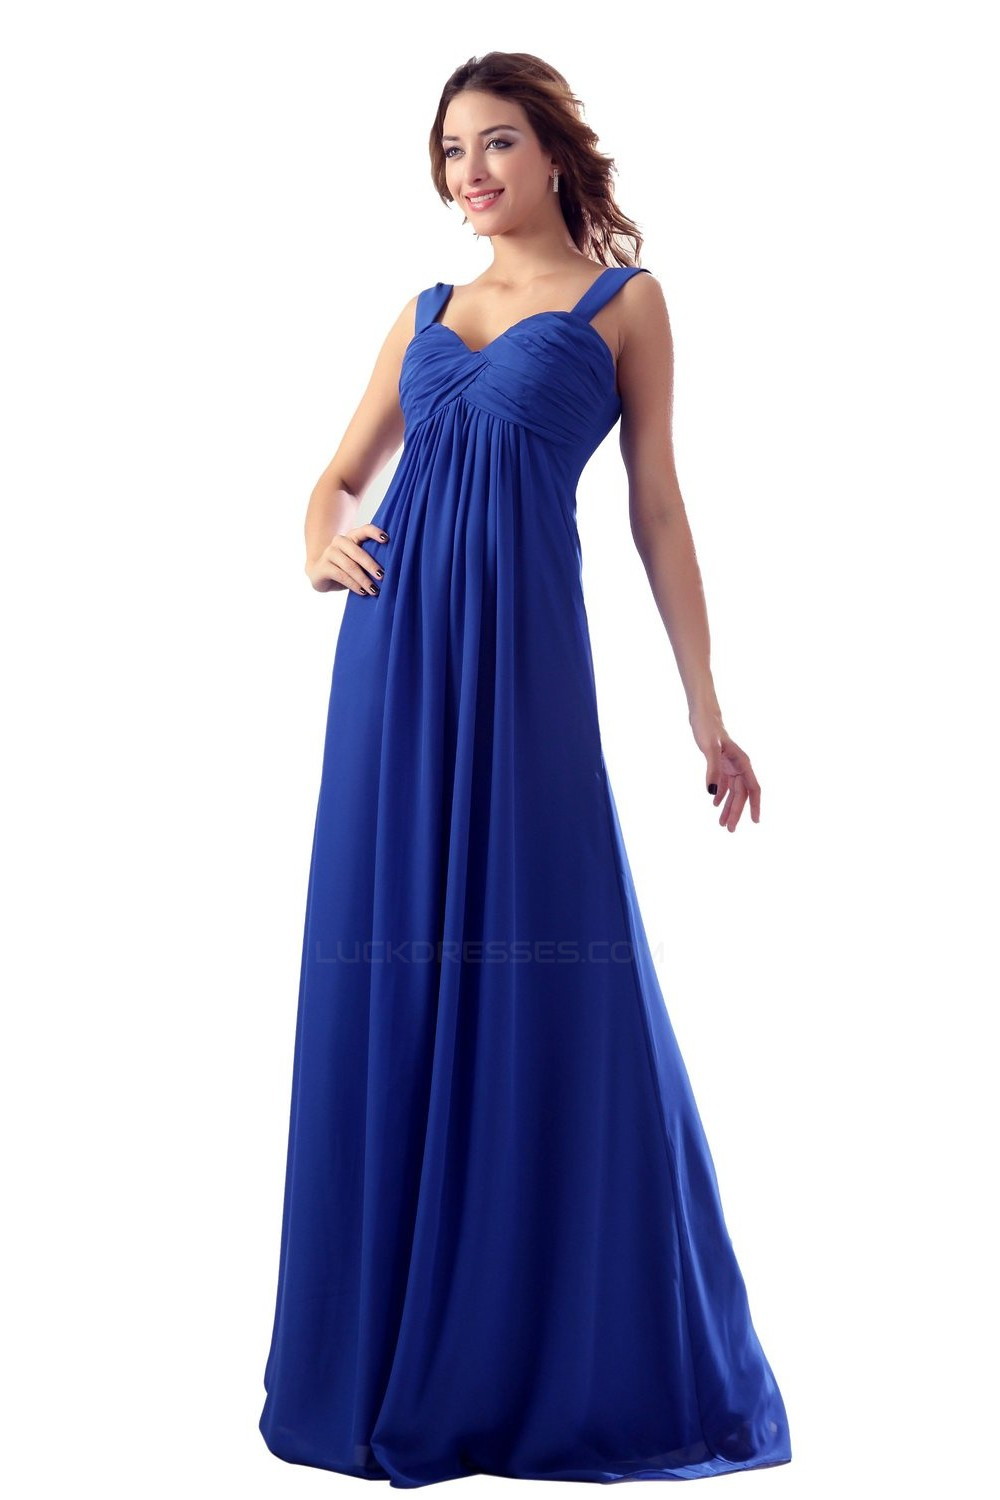 2019 year looks- Blue royal bridesmaid dresses with straps